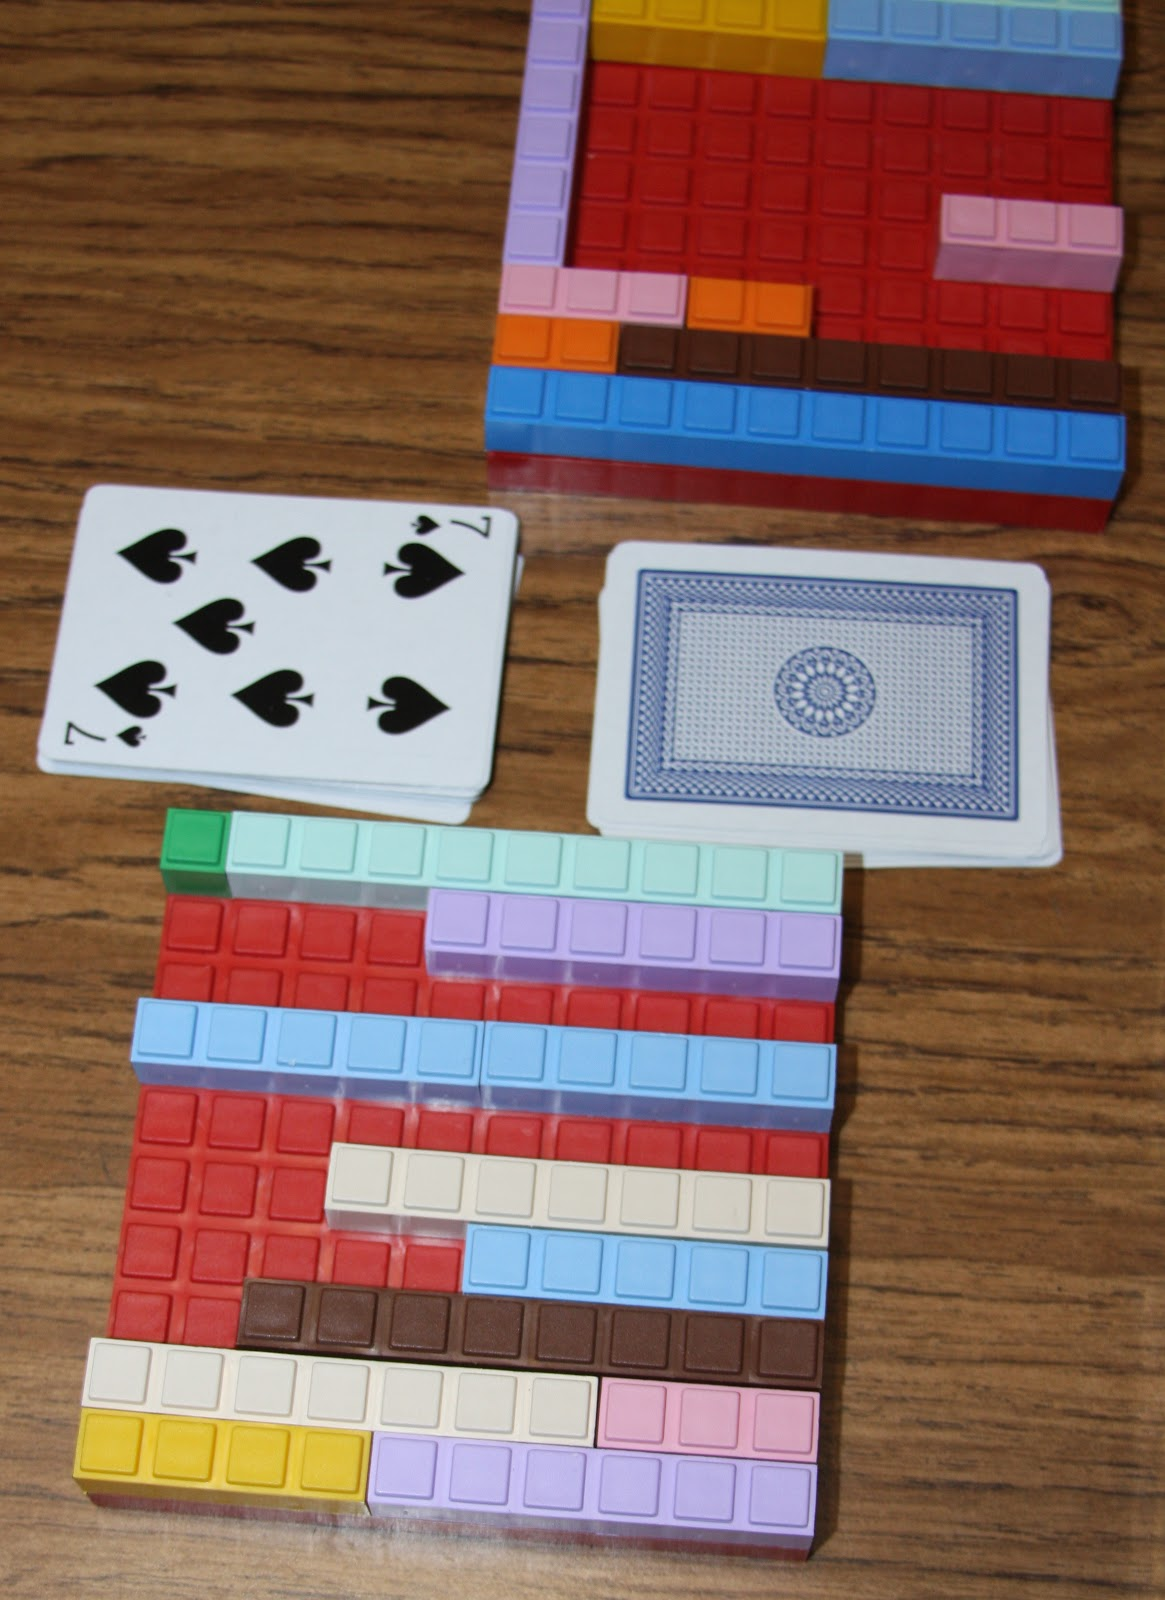 A Learning Journey Math U See Race To 100 Game And Update